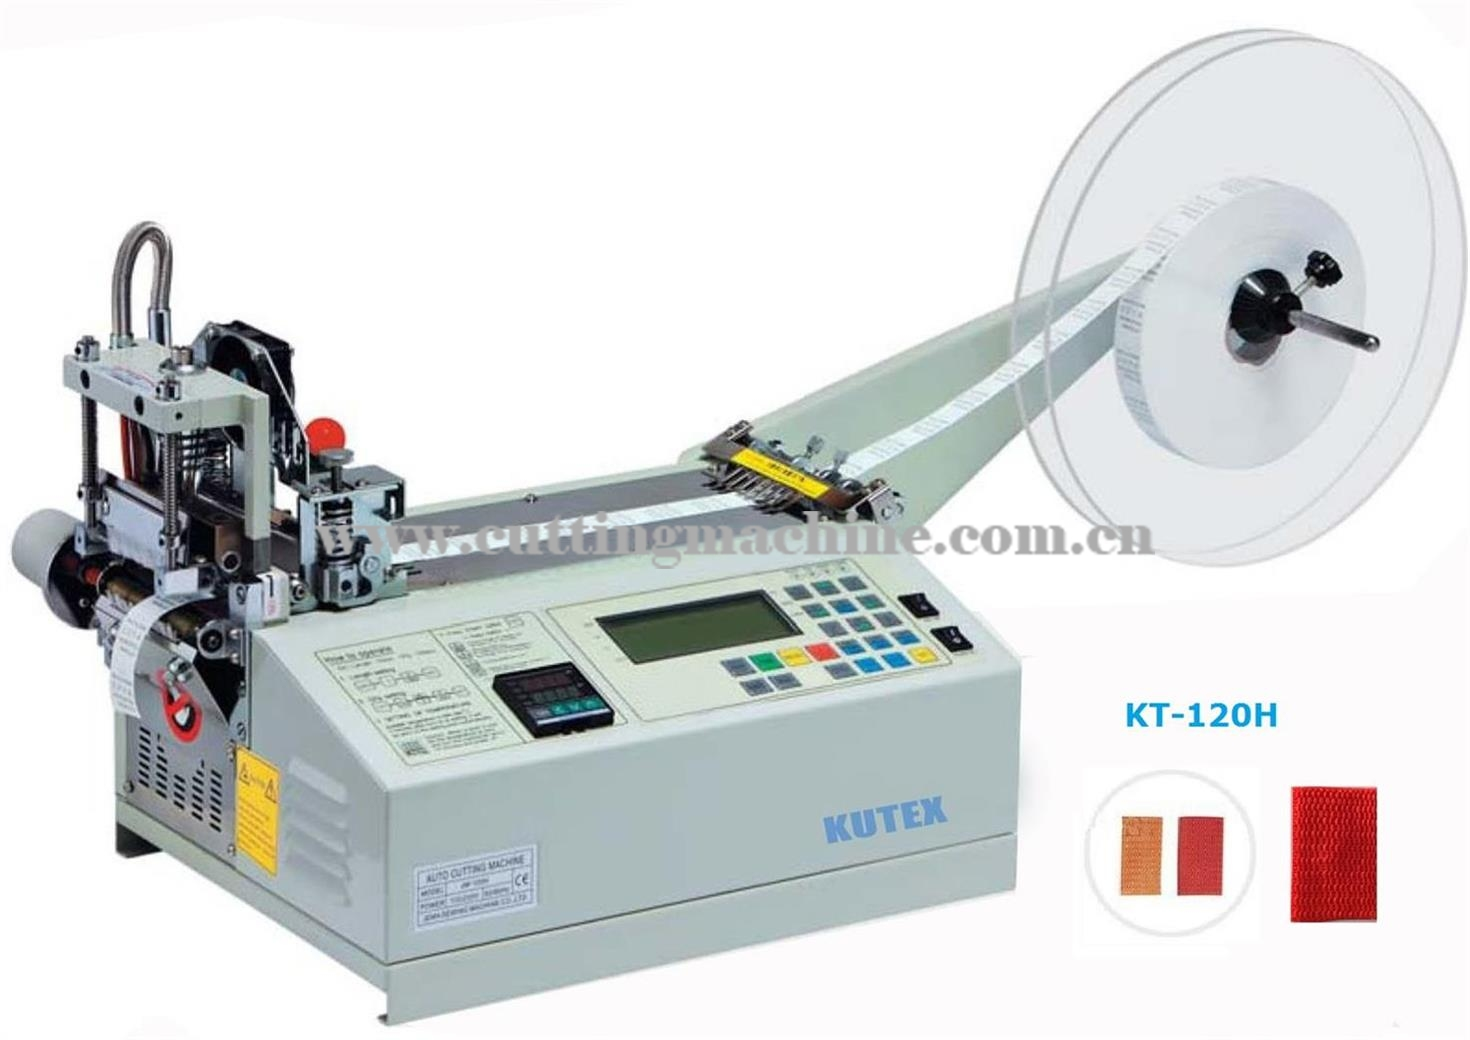 Hot Knife Automatic Tape Cutter